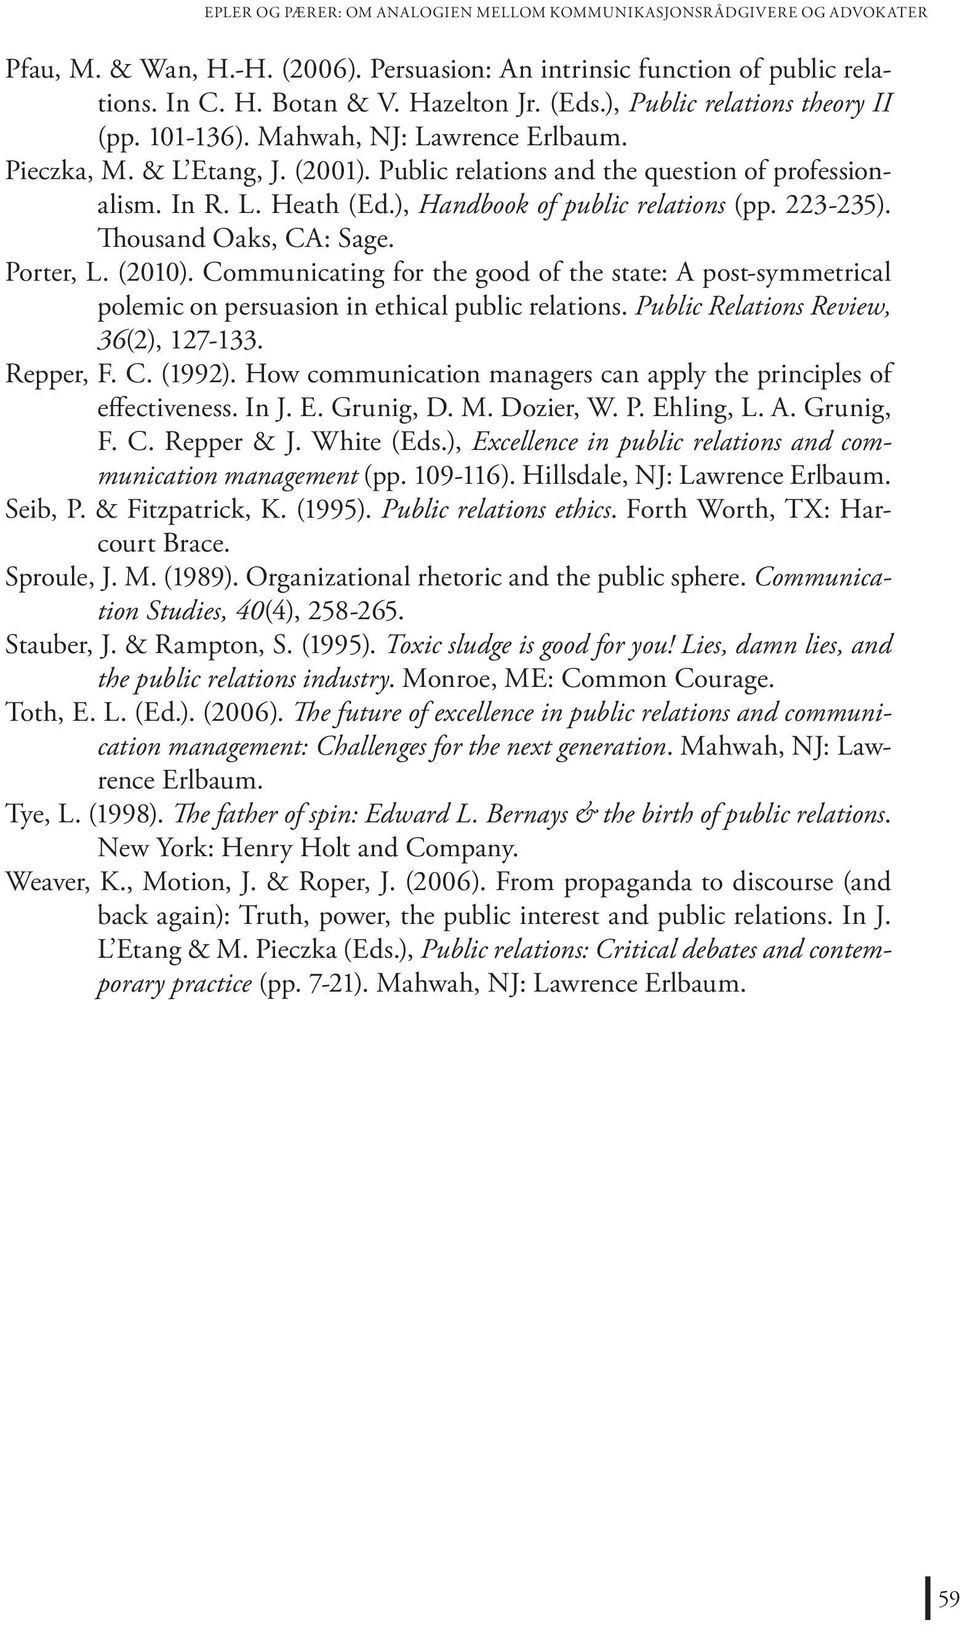 ), Handbook of public relations (pp. 223-235). Thousand Oaks, CA: Sage. Porter, L. (2010).